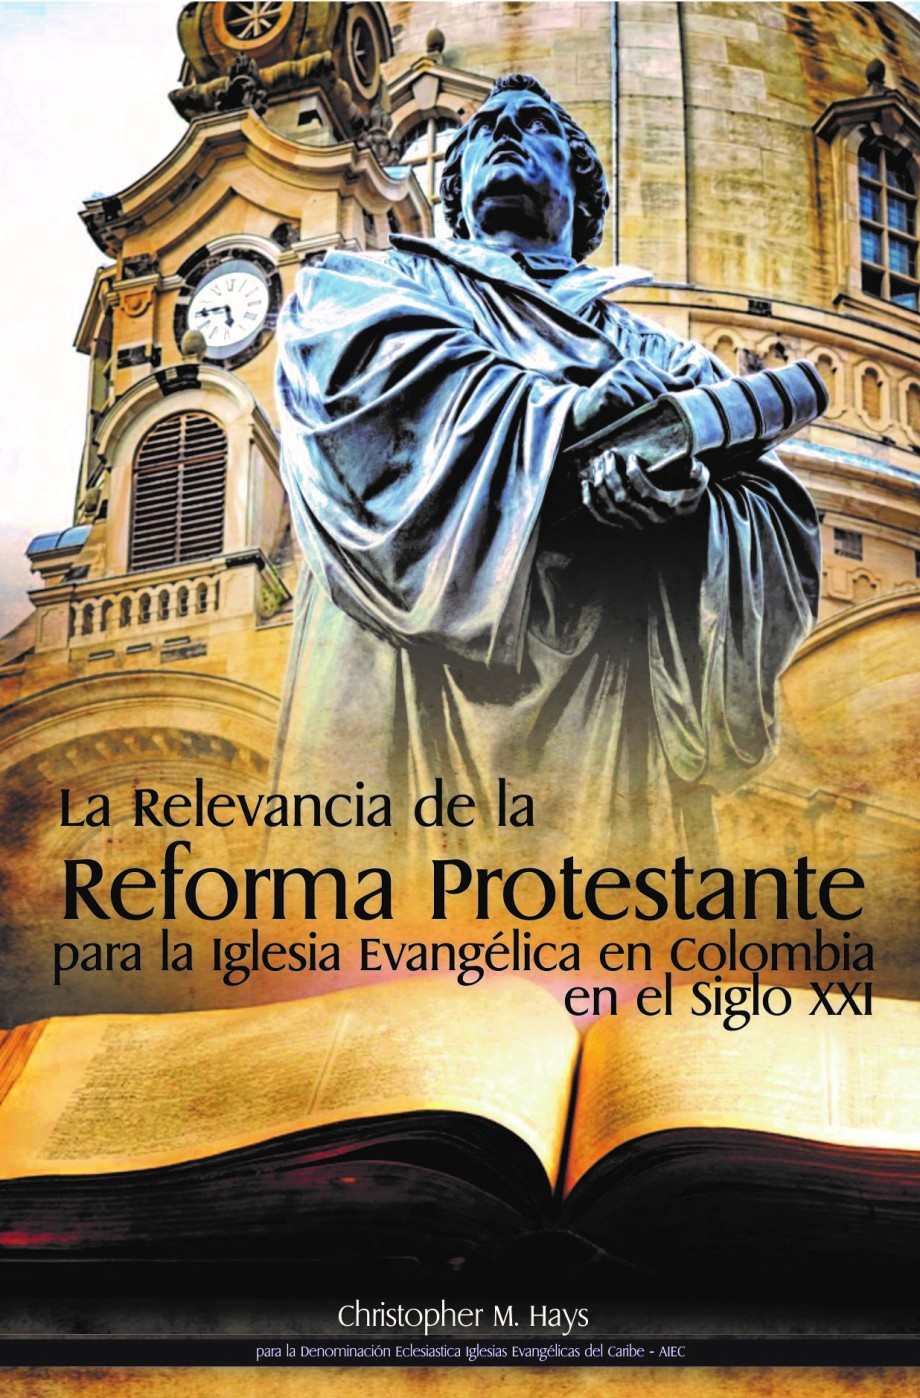 La Relevancia de la Reforma Protestante Front Cover